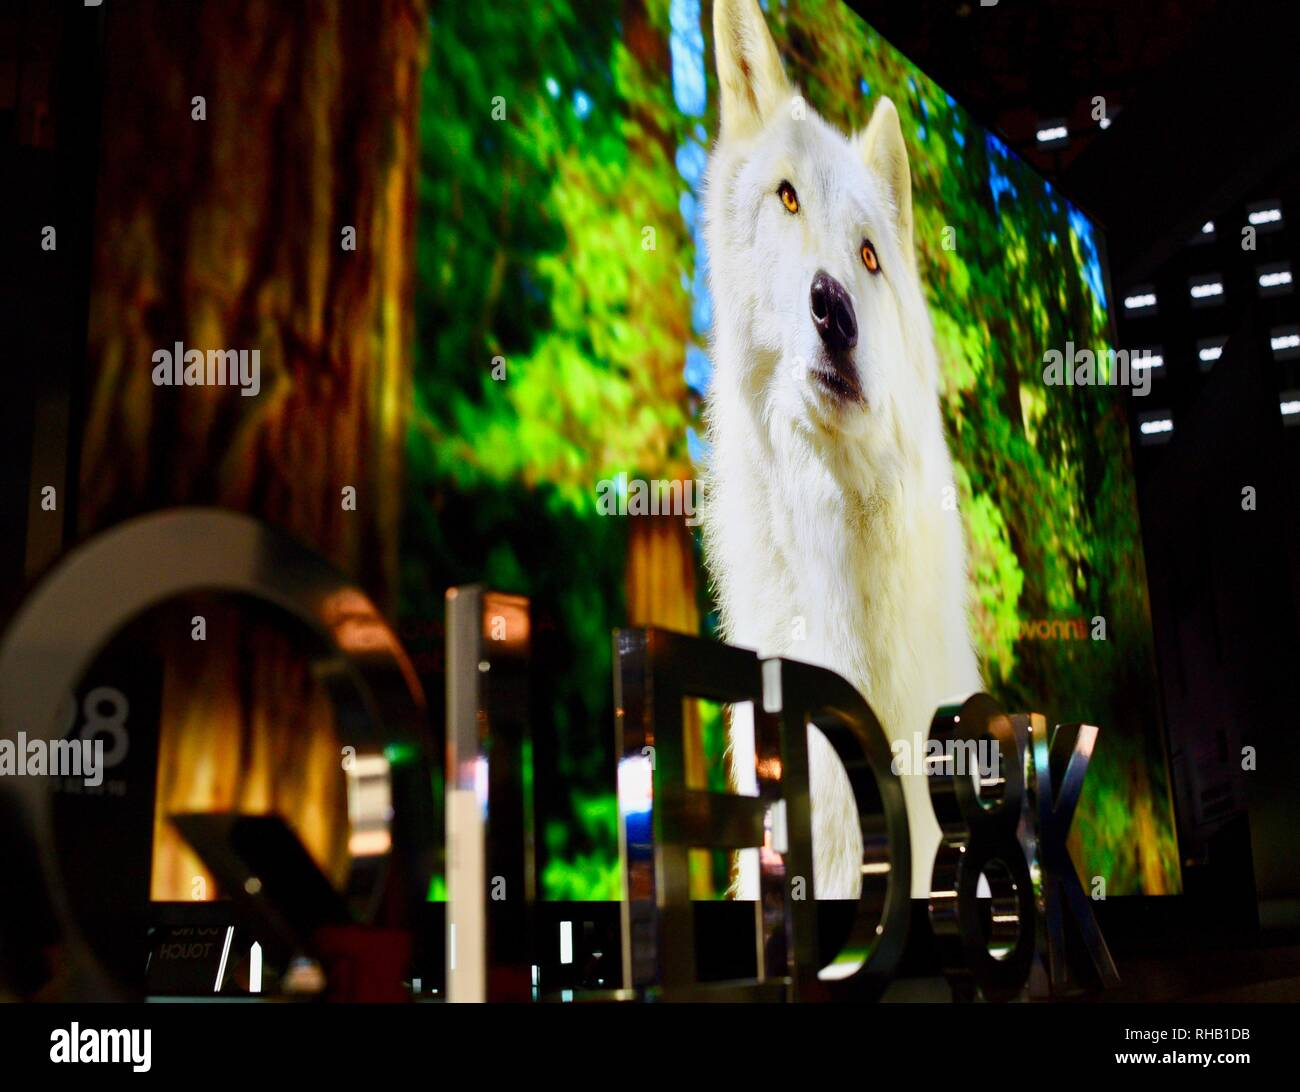 Close up of wolf viewed on Samsung QLED 8K TV (television) in exhibit booth at CES, world's largest consumer electronic show, Las Vegas, NV, USA - Stock Image